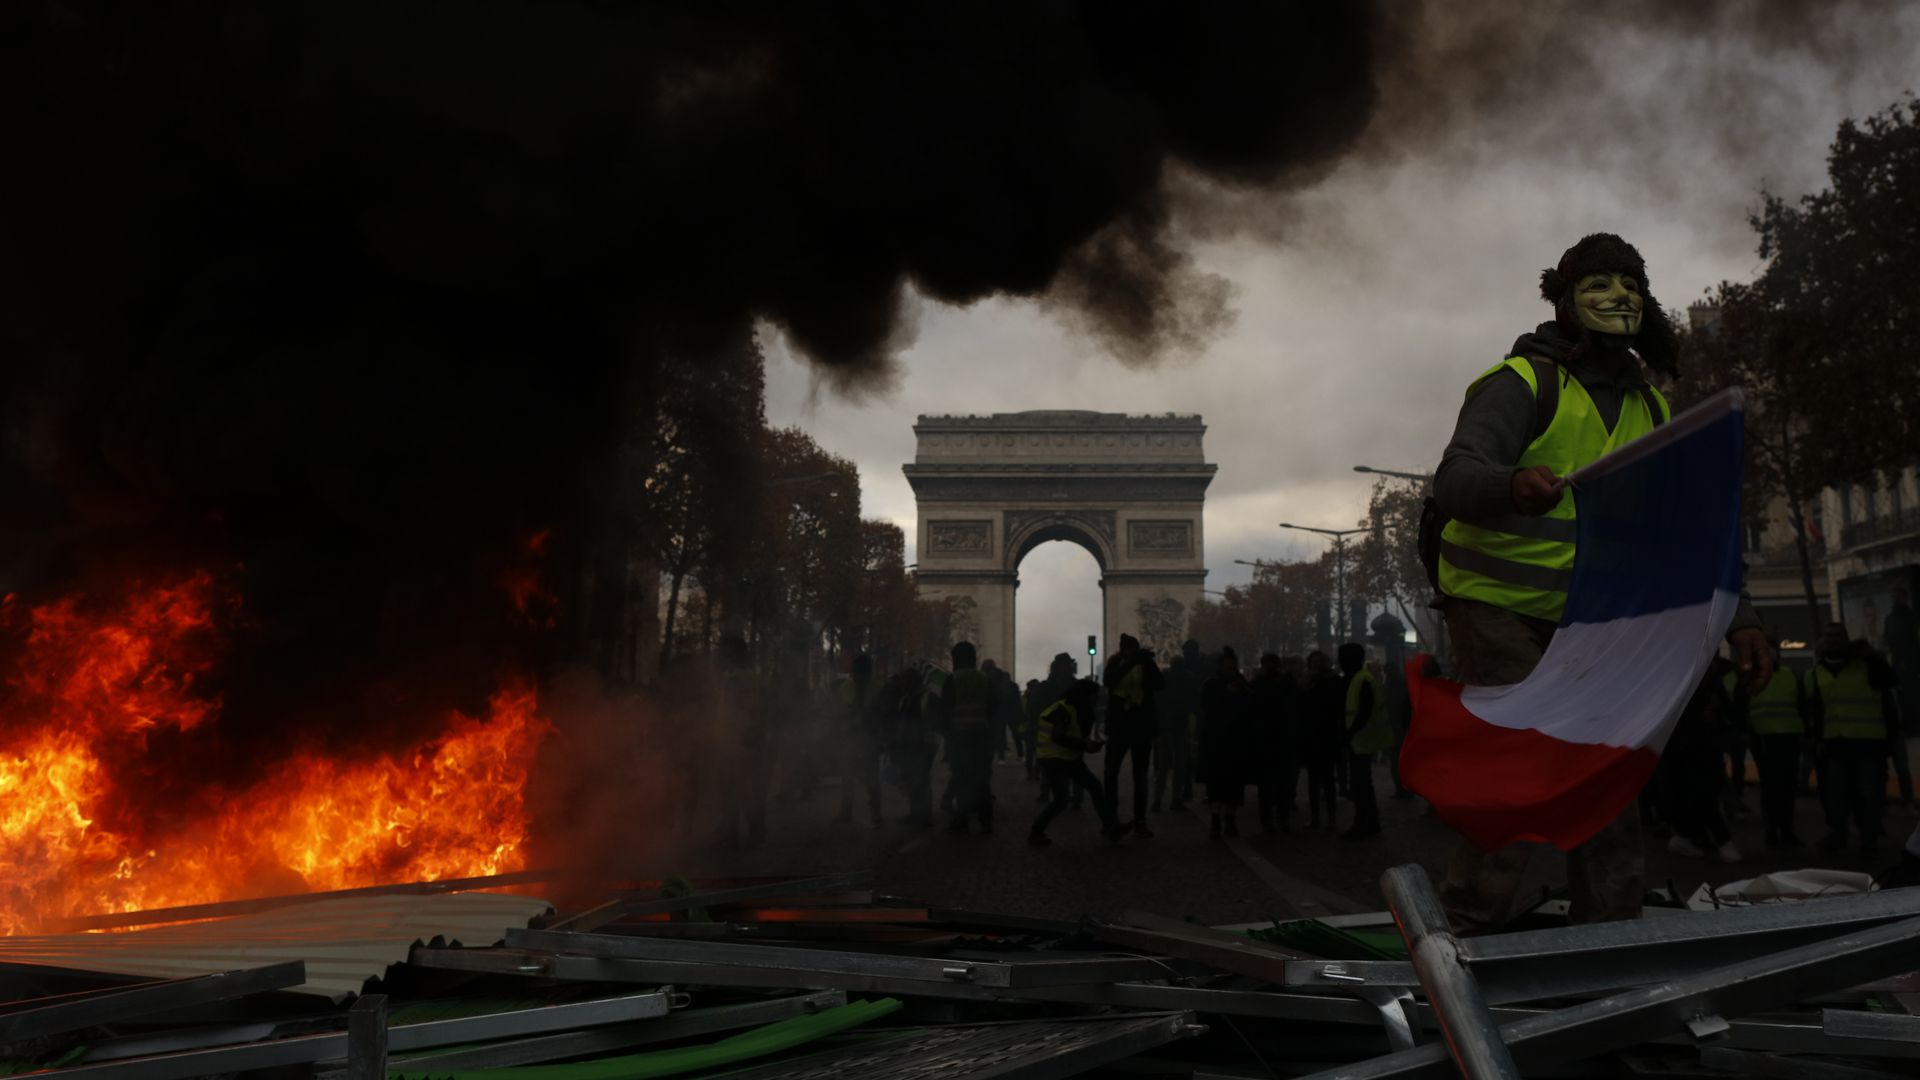 Yellow vests (Gilets jaunes) protestors shout slogans as material burns during a protest against rising oil prices and living costs near the Arc of Triomphe on the Champs Elysees in Paris